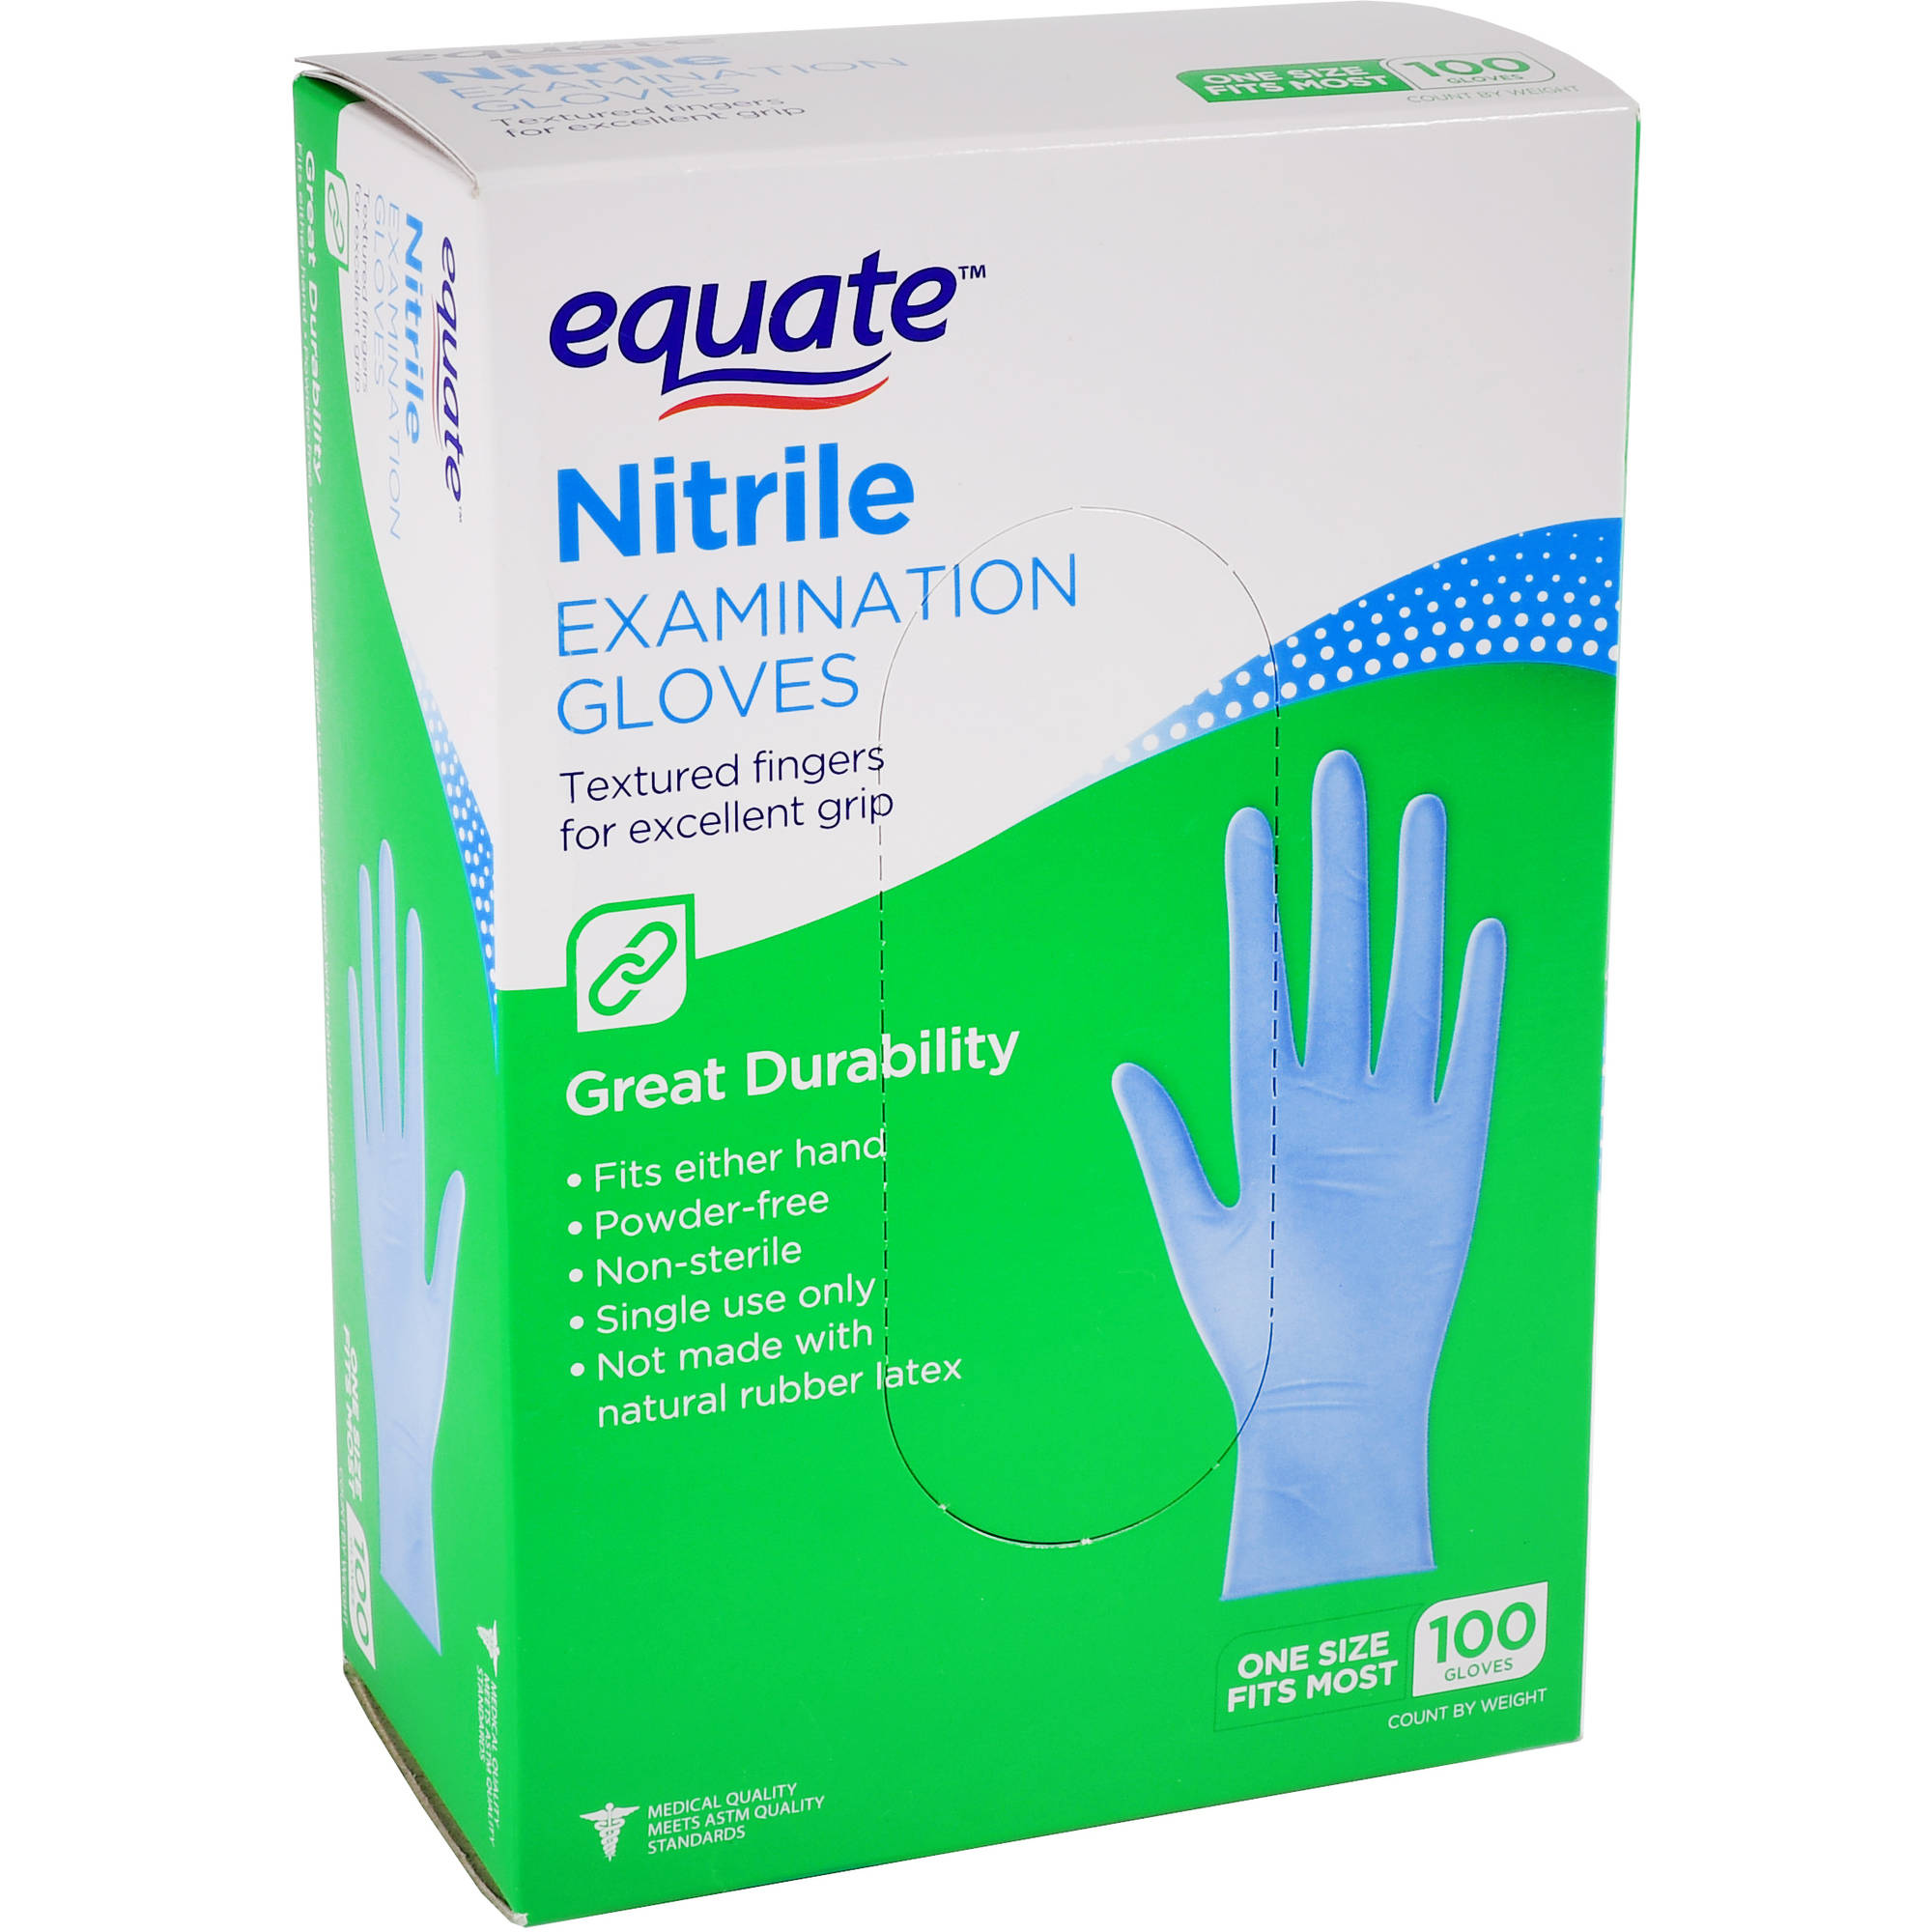 Equate Nitrile Examination Gloves, One Size, 100 Ct by Wal-Mart Stores, Inc.